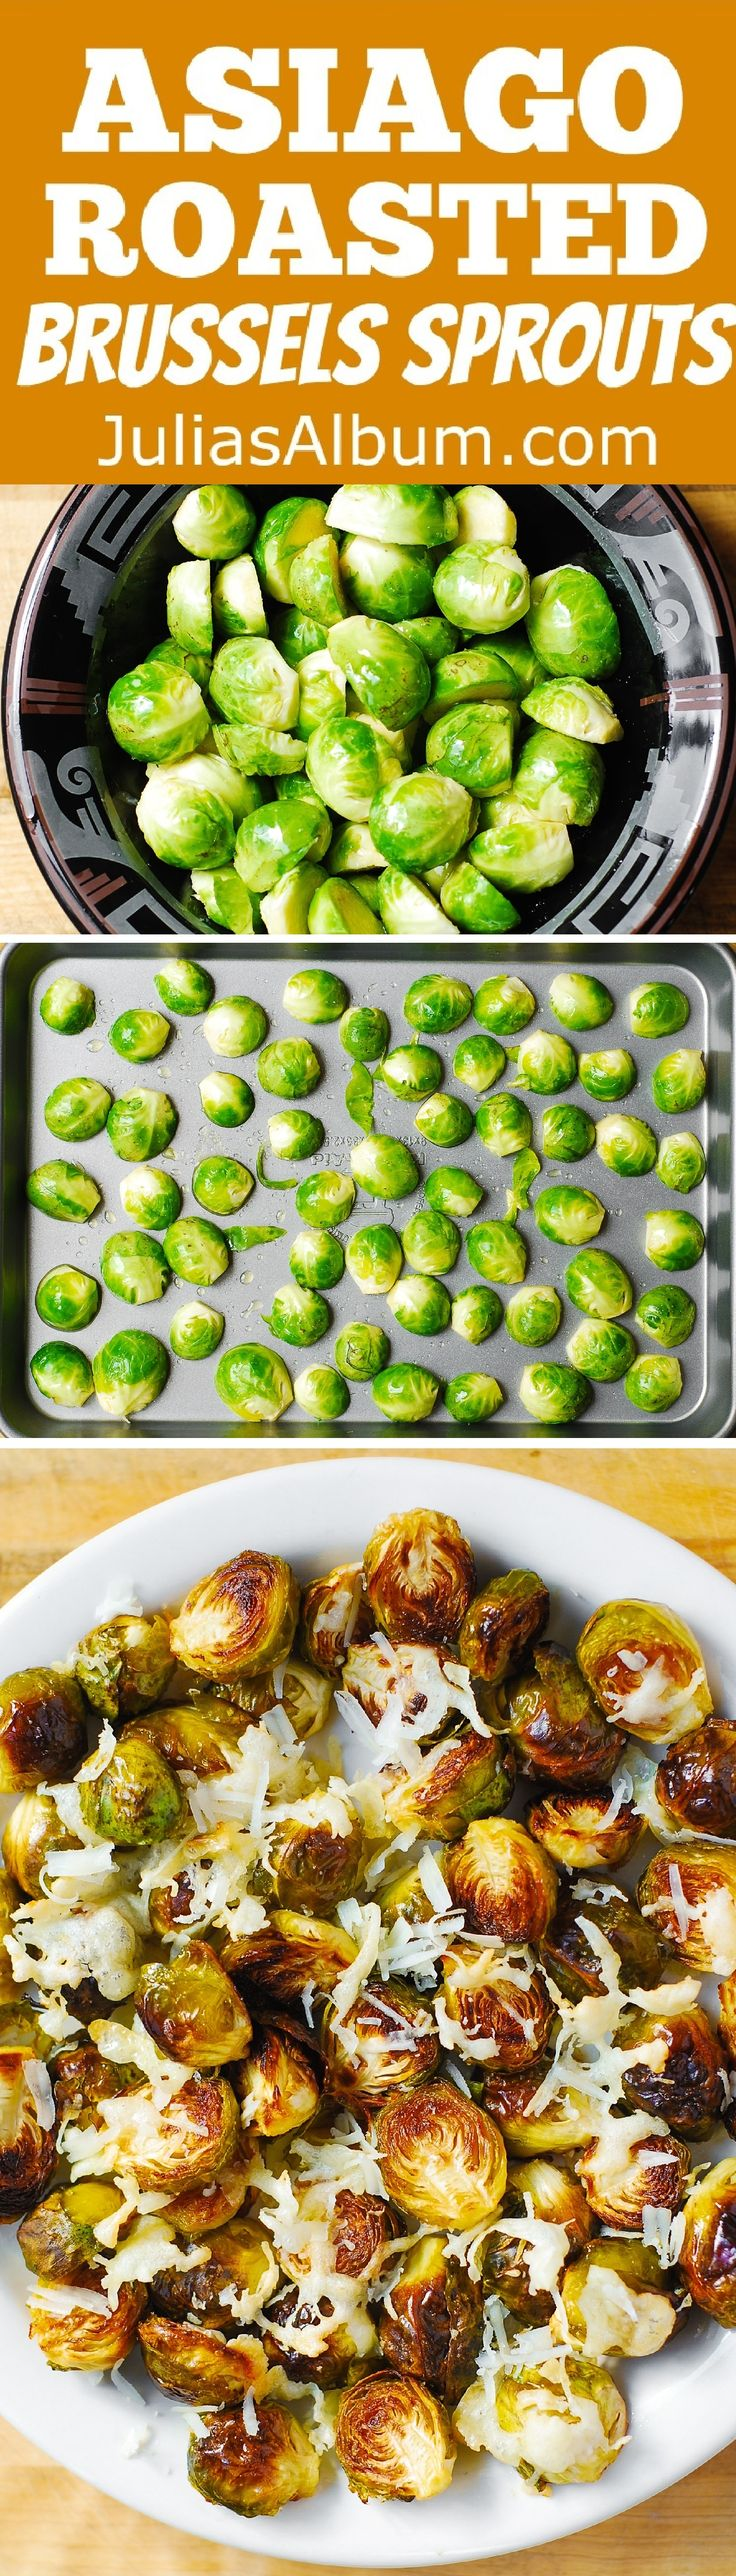 Asiago Roasted Brussels Sprouts - crunchy, delicious little bites covered in melted Asiago cheese goodness. #Thanksgiving #glutenfree #healthy